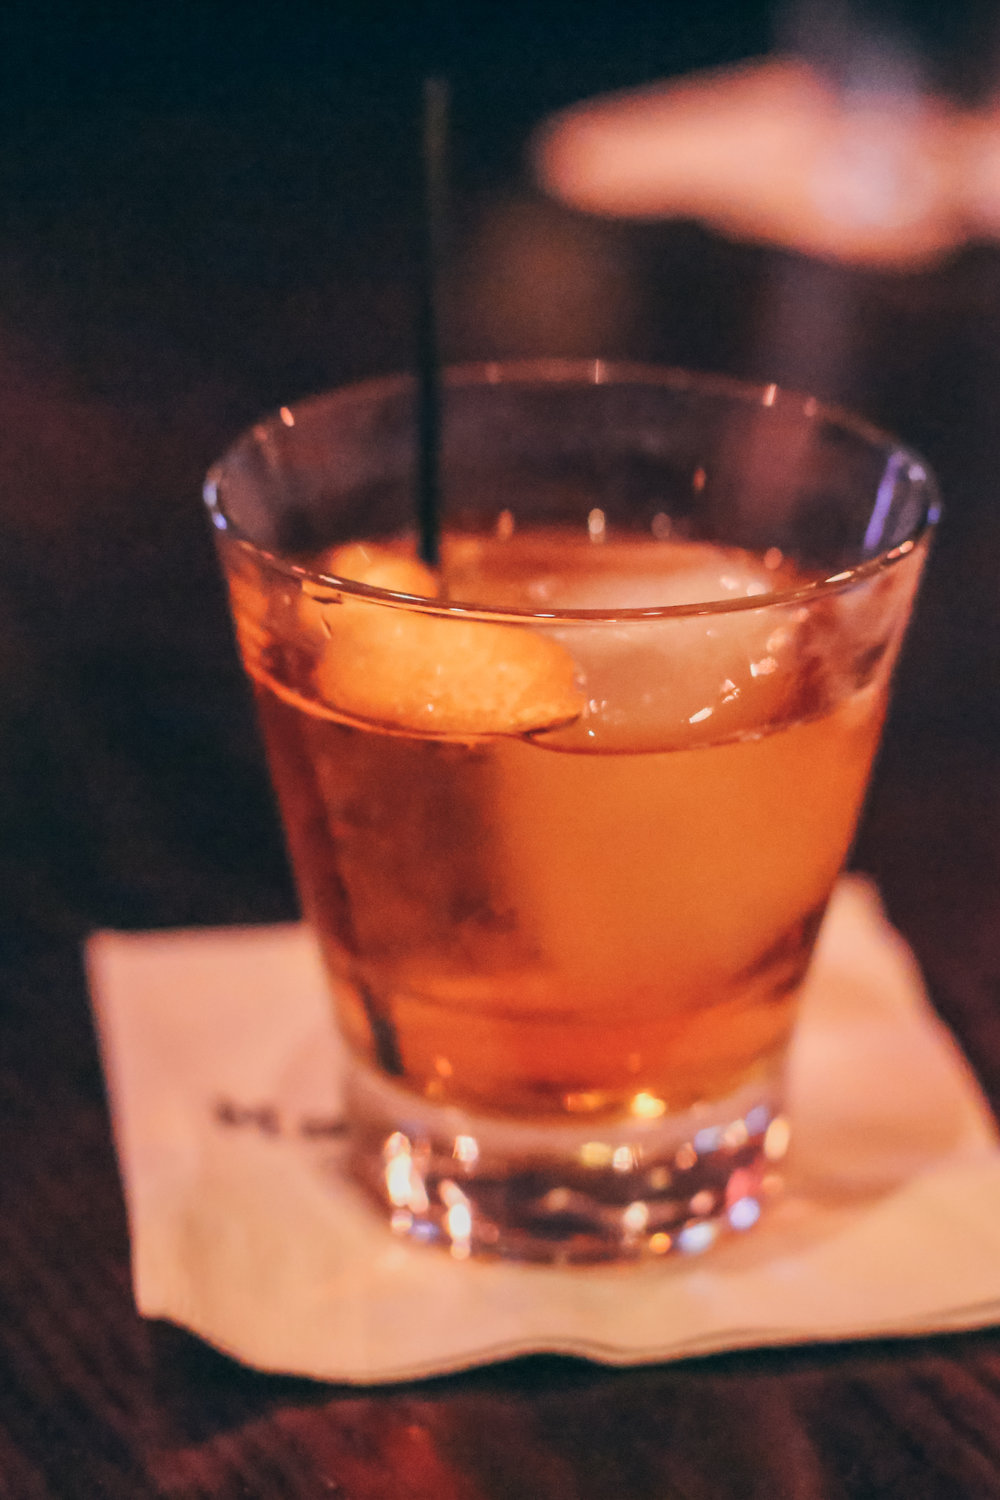 Barrel-Aged Scrappy Old Timer (from the regular menu): Old Forester, Suze Aperitif, Cocchi Torino, Vermouth and Scrappy Orange Bitters